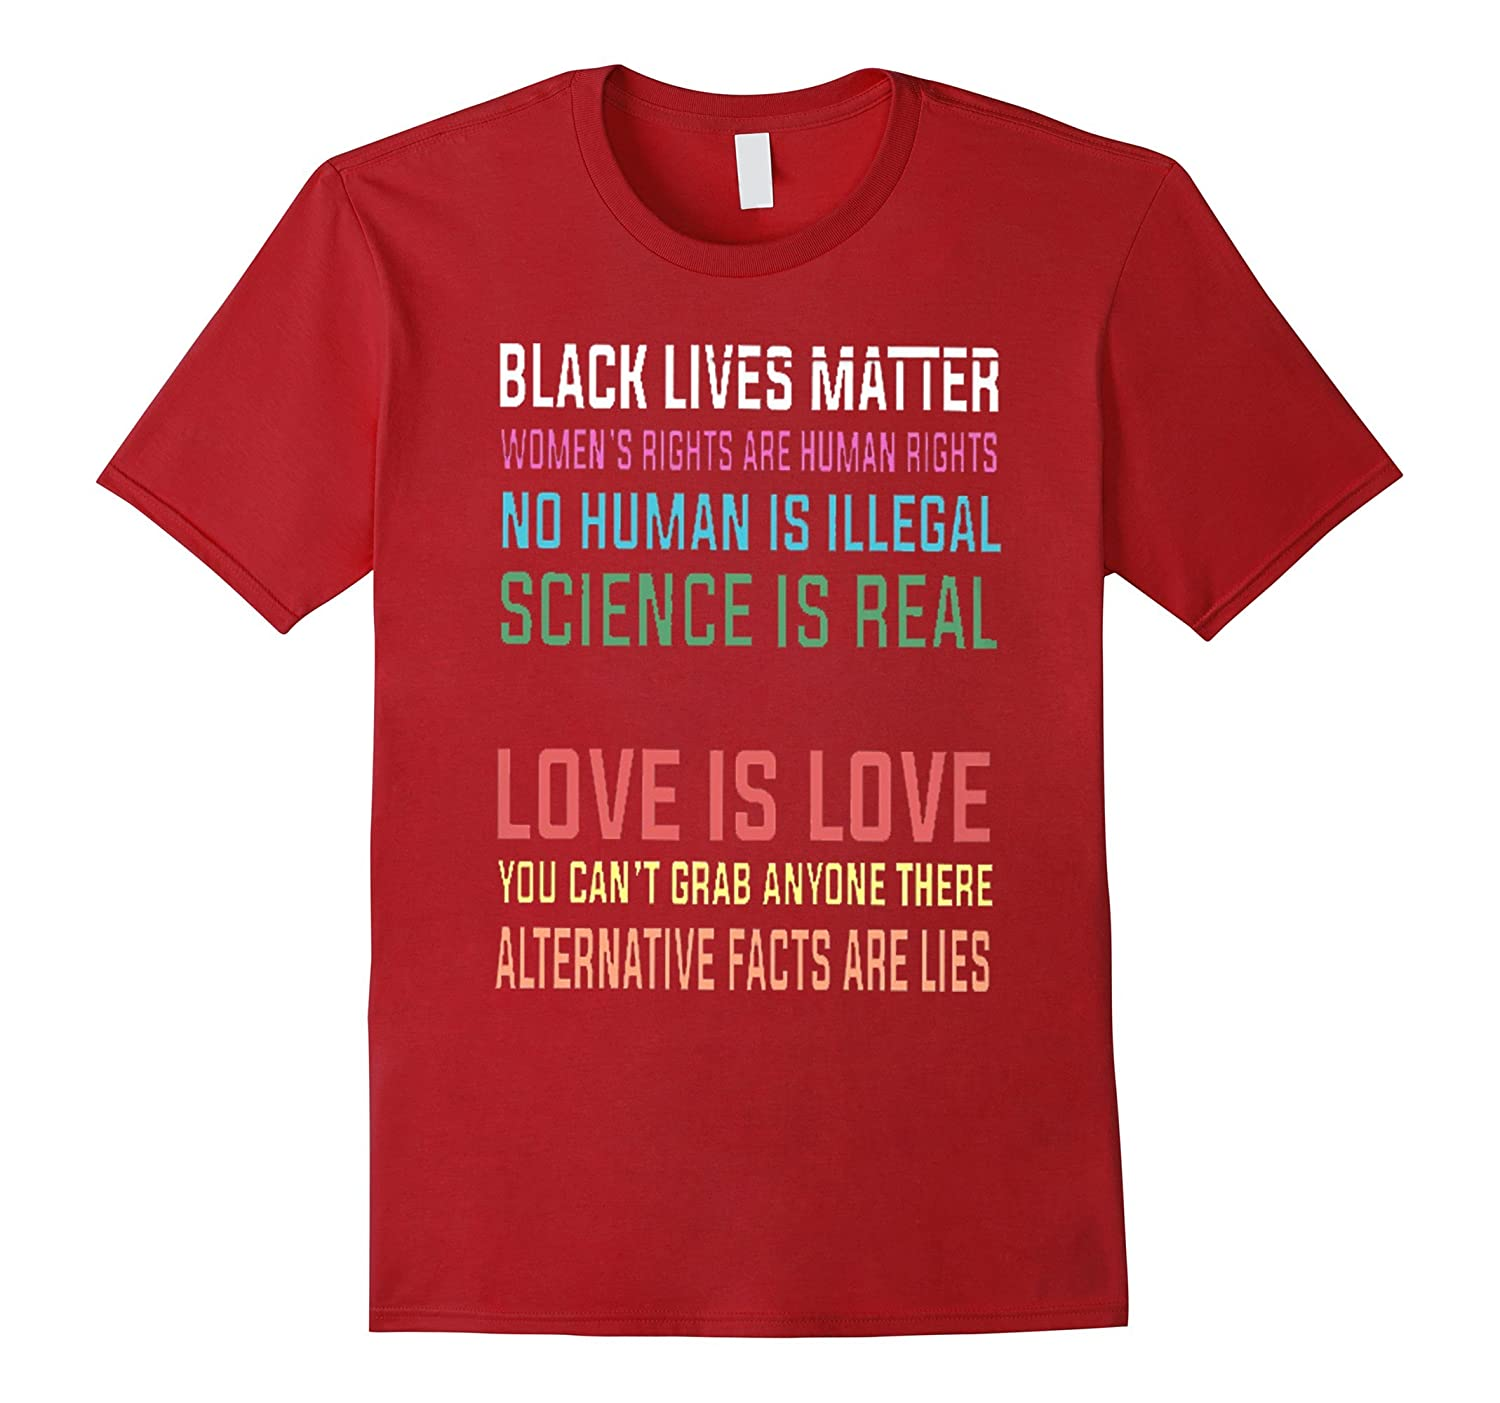 """Black Live Matter Women""""s rights Are Human Rights T-shirt"""